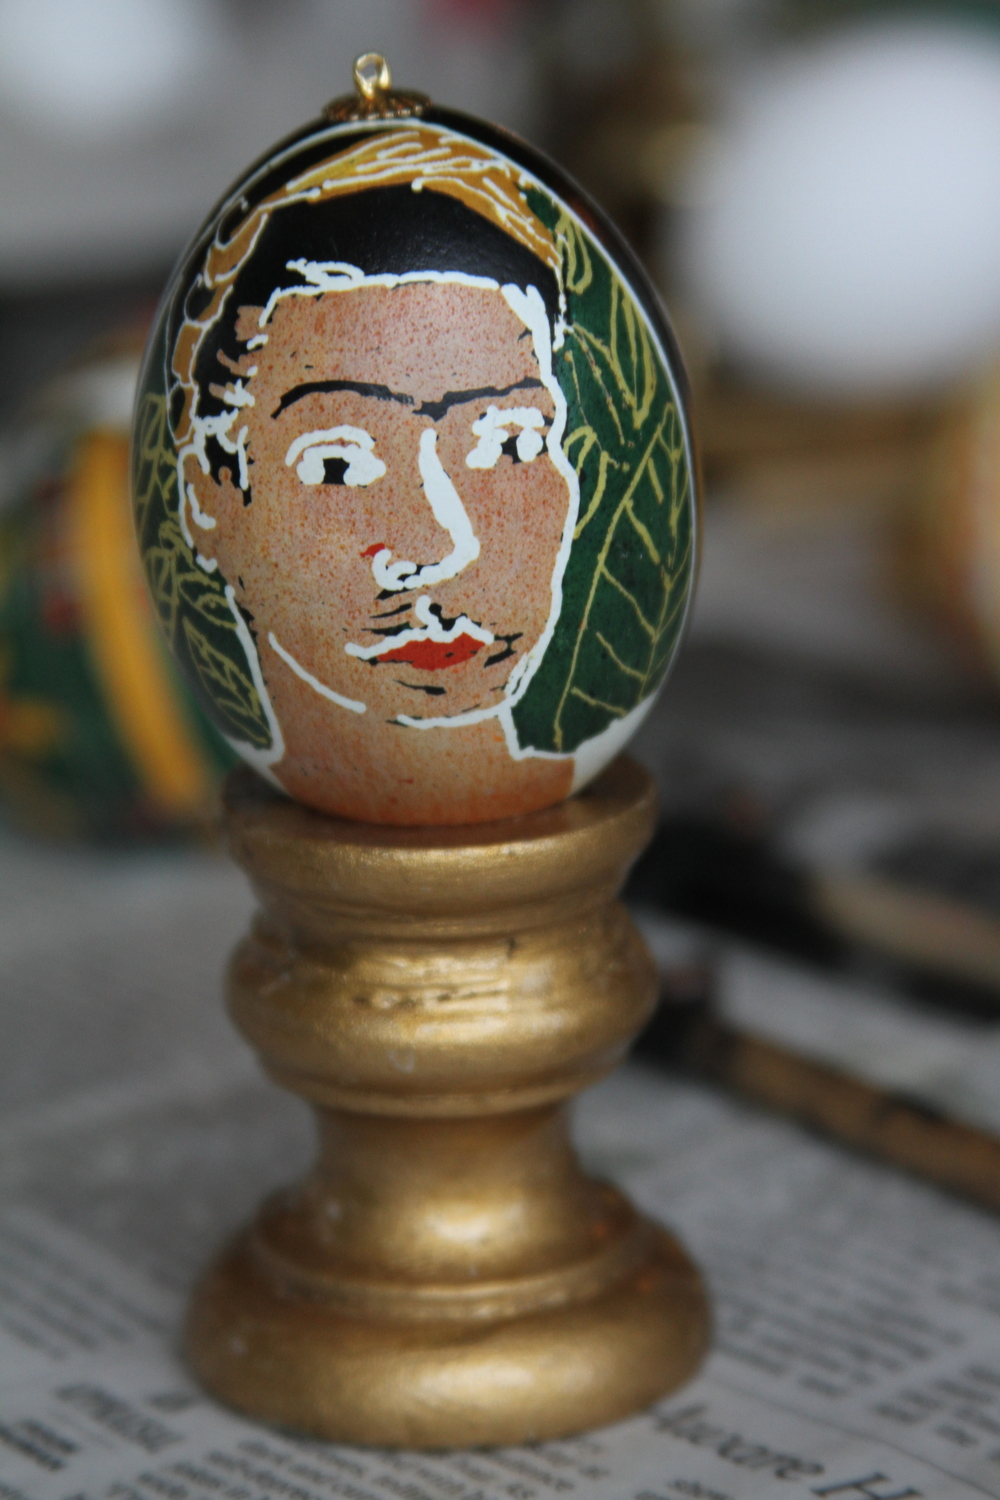 My First egg this year- portrait of Frida Kahlo